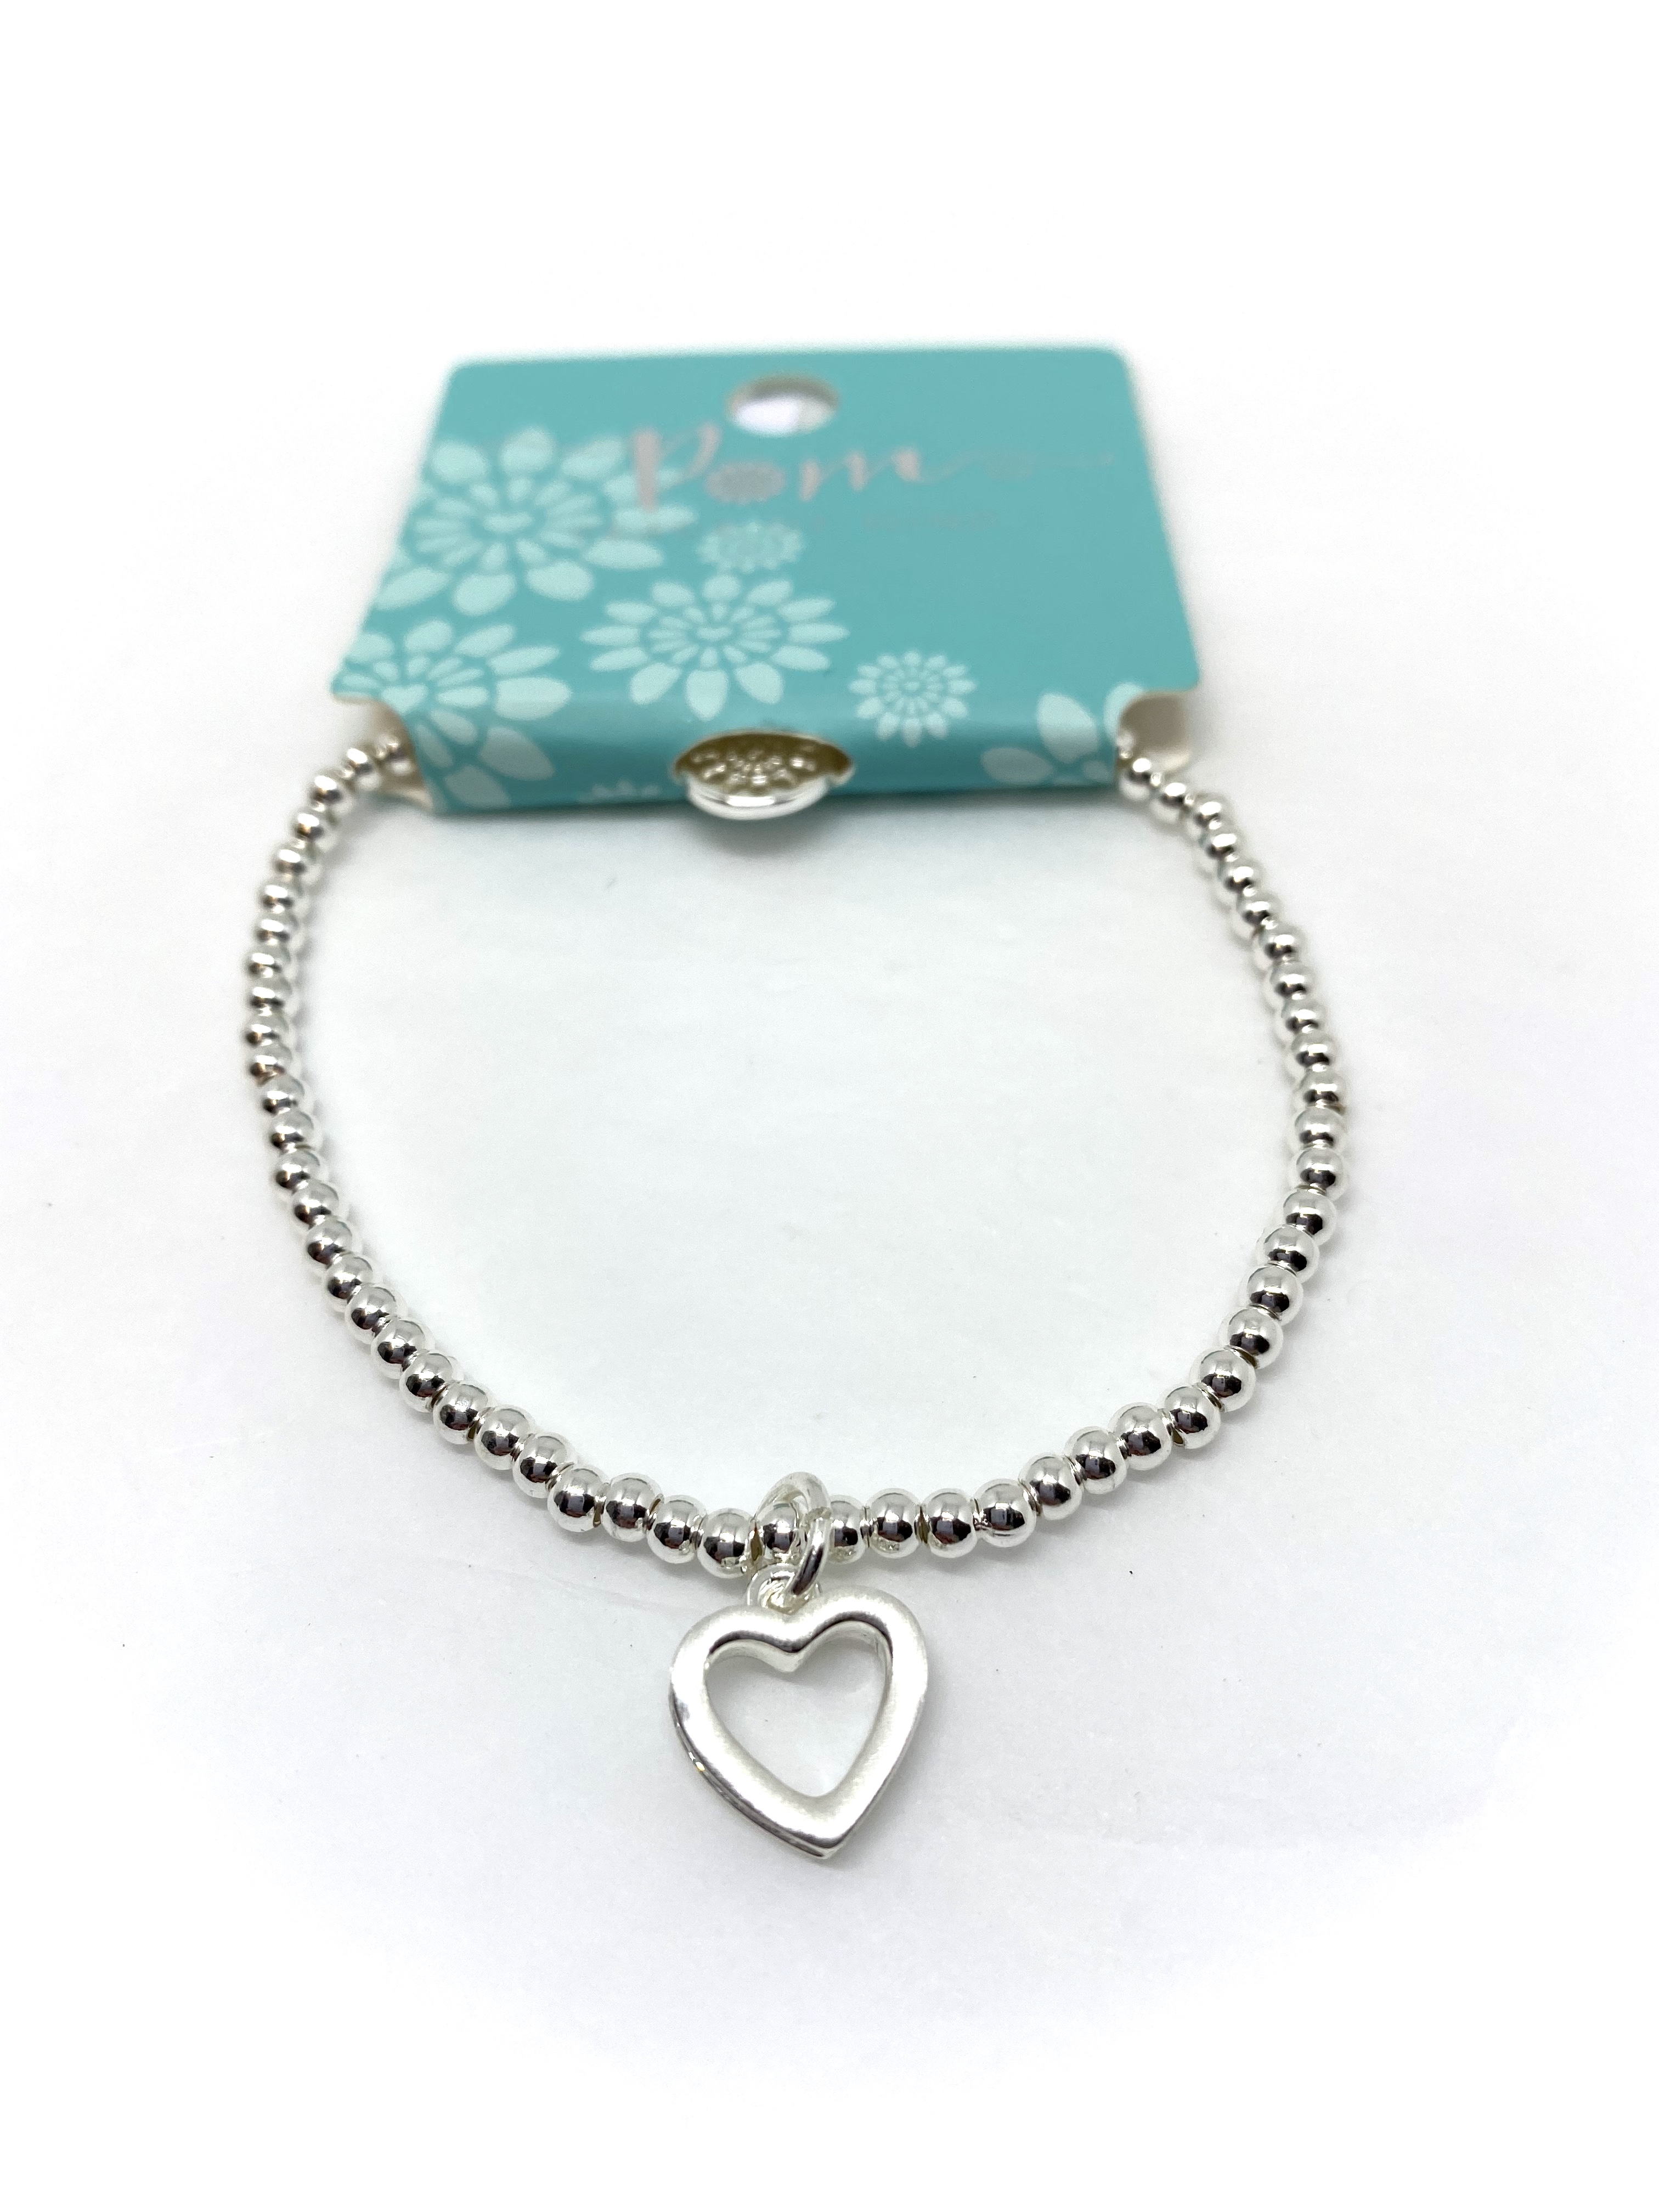 Small Open Heart with Tiny Inset Crystals Bracelet